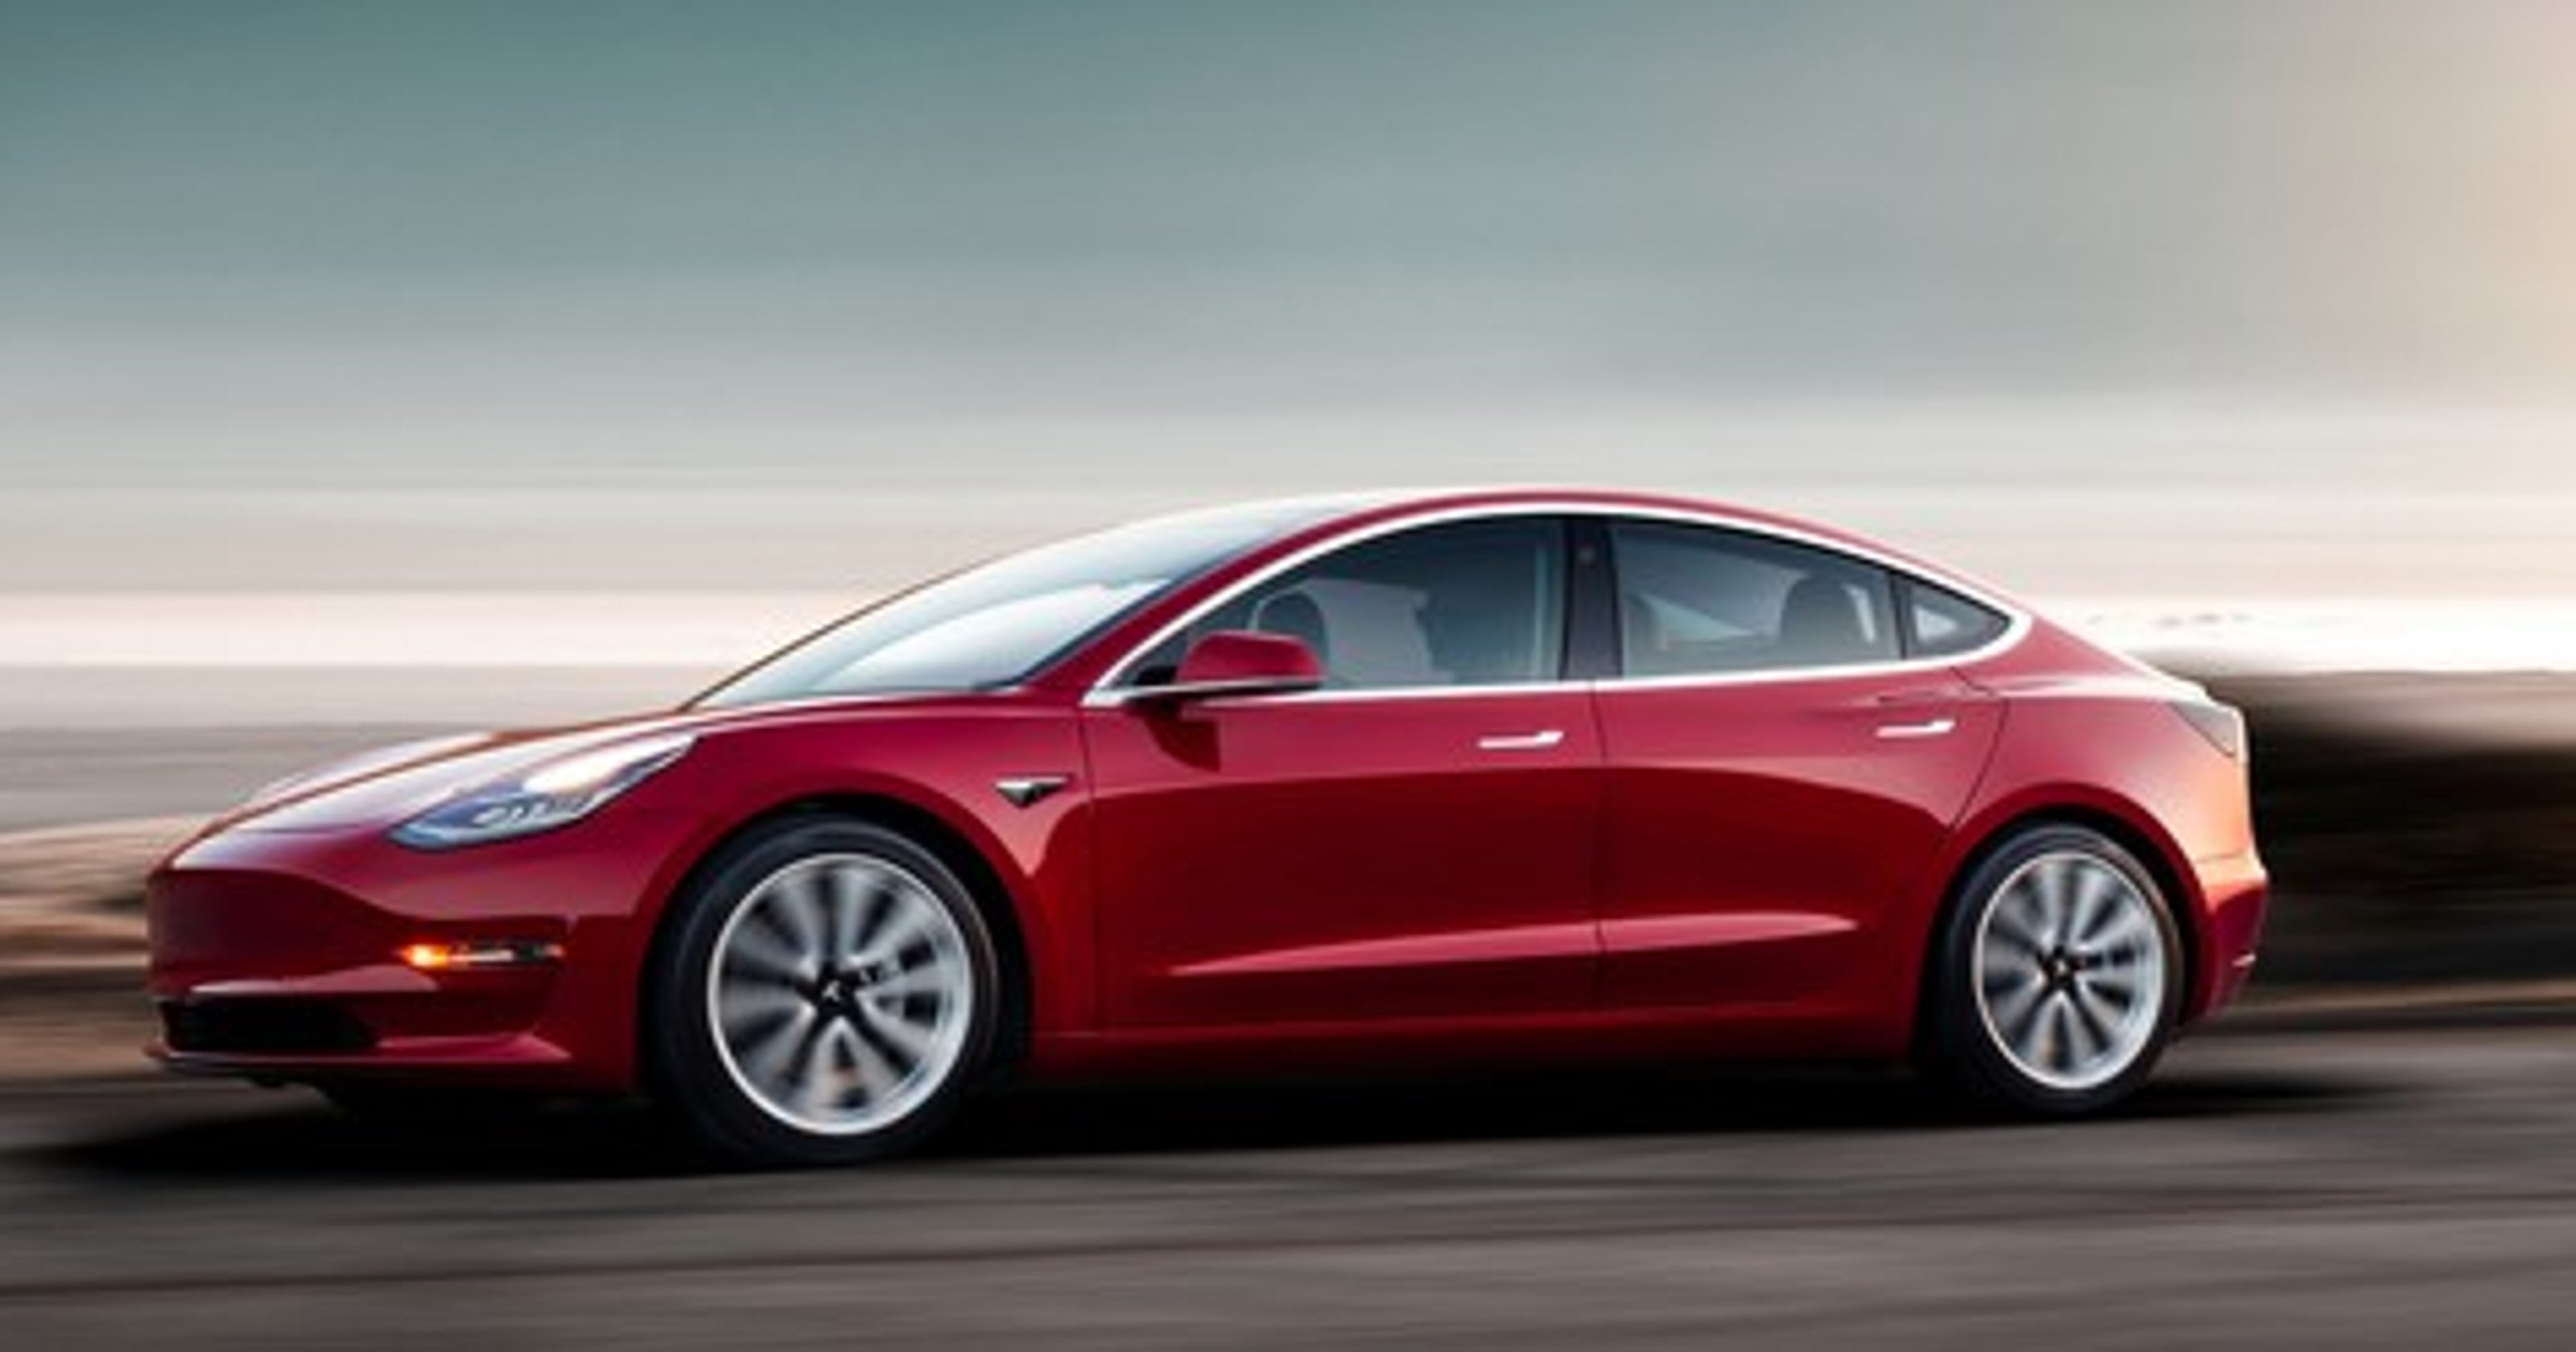 tesla electric car price cut model 3 model s model x get discounts. Black Bedroom Furniture Sets. Home Design Ideas